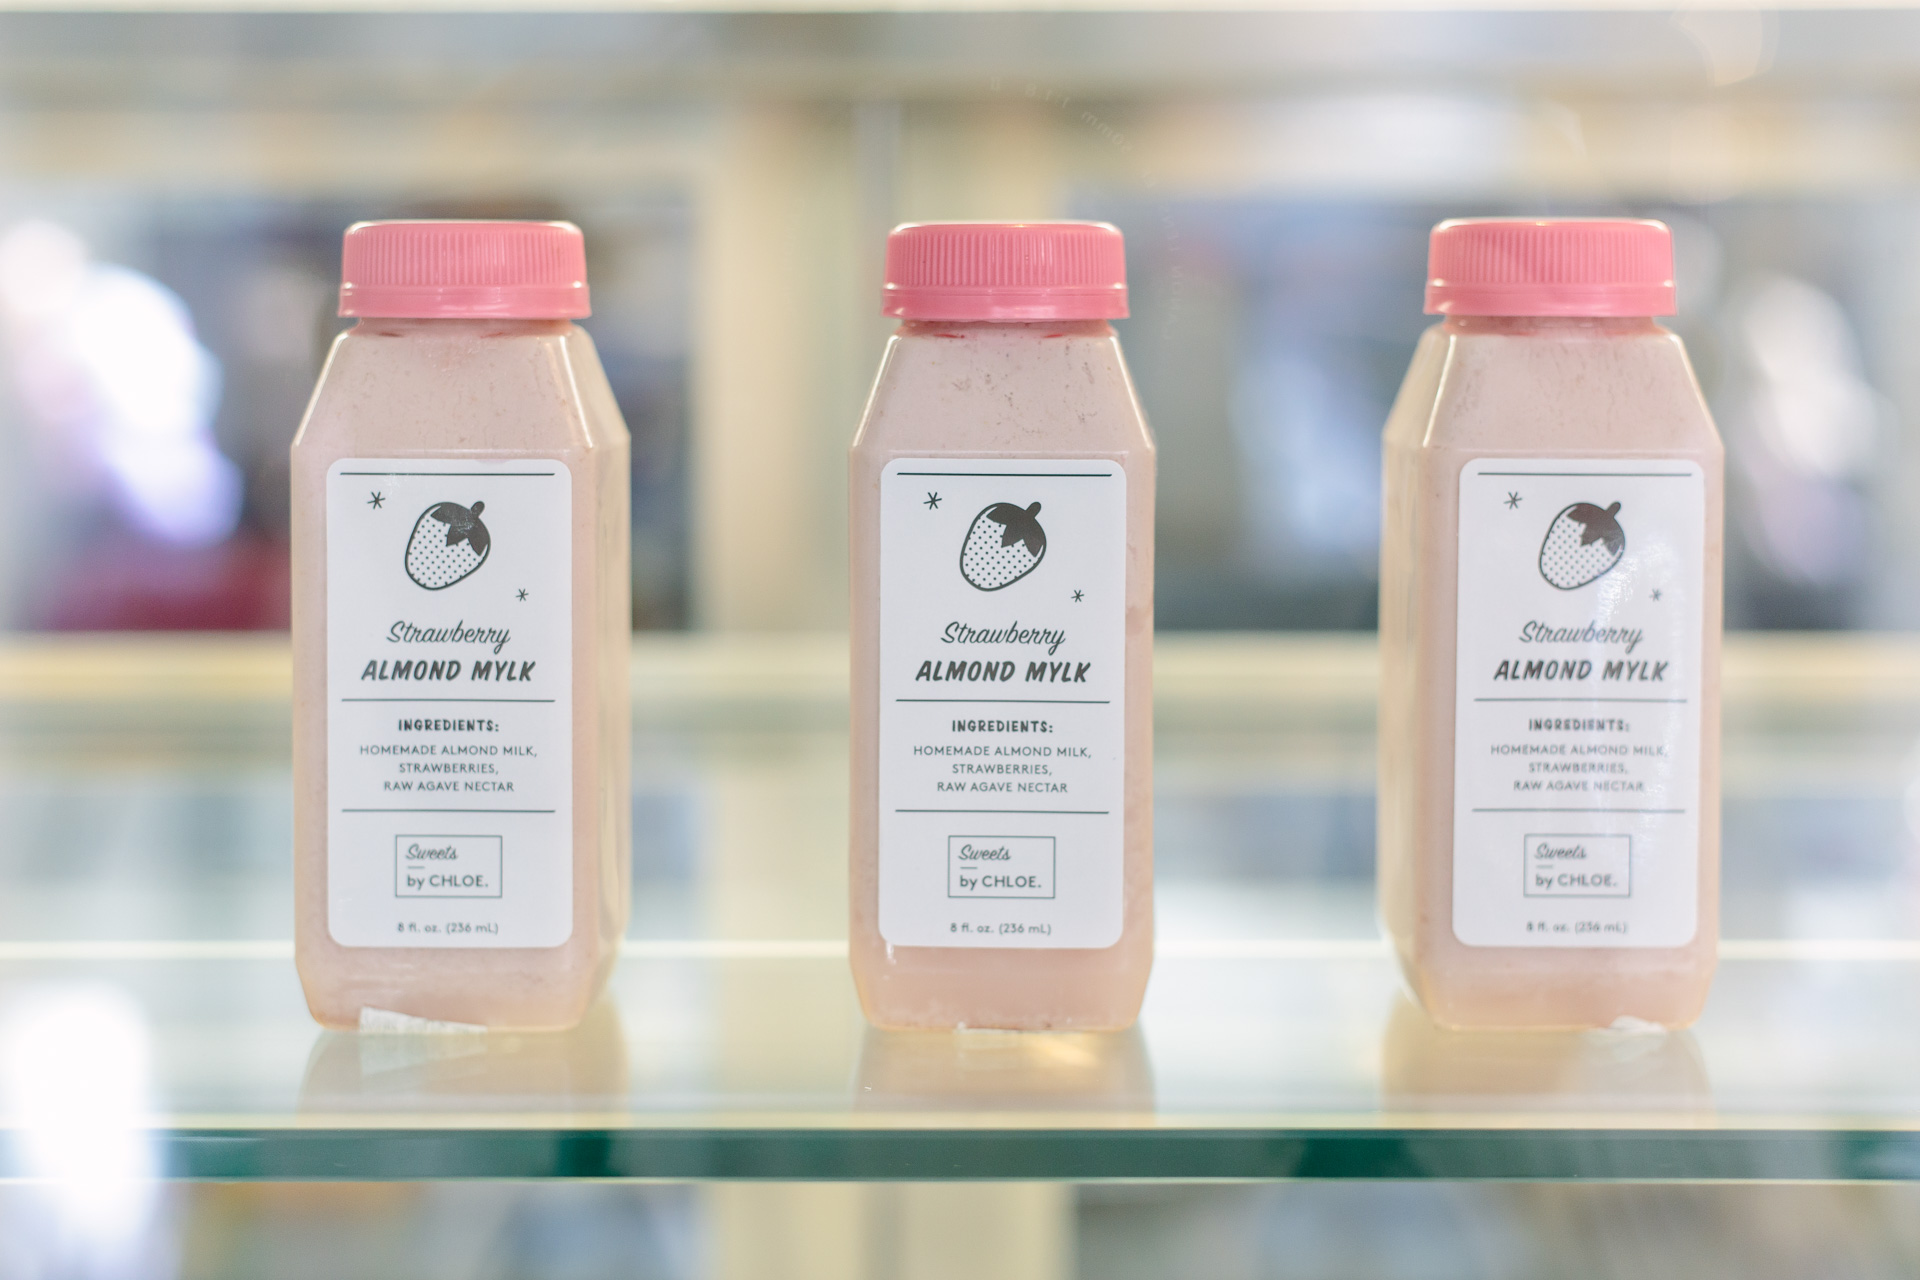 Strawberry almond mylk at Sweets by Chloe in NYC